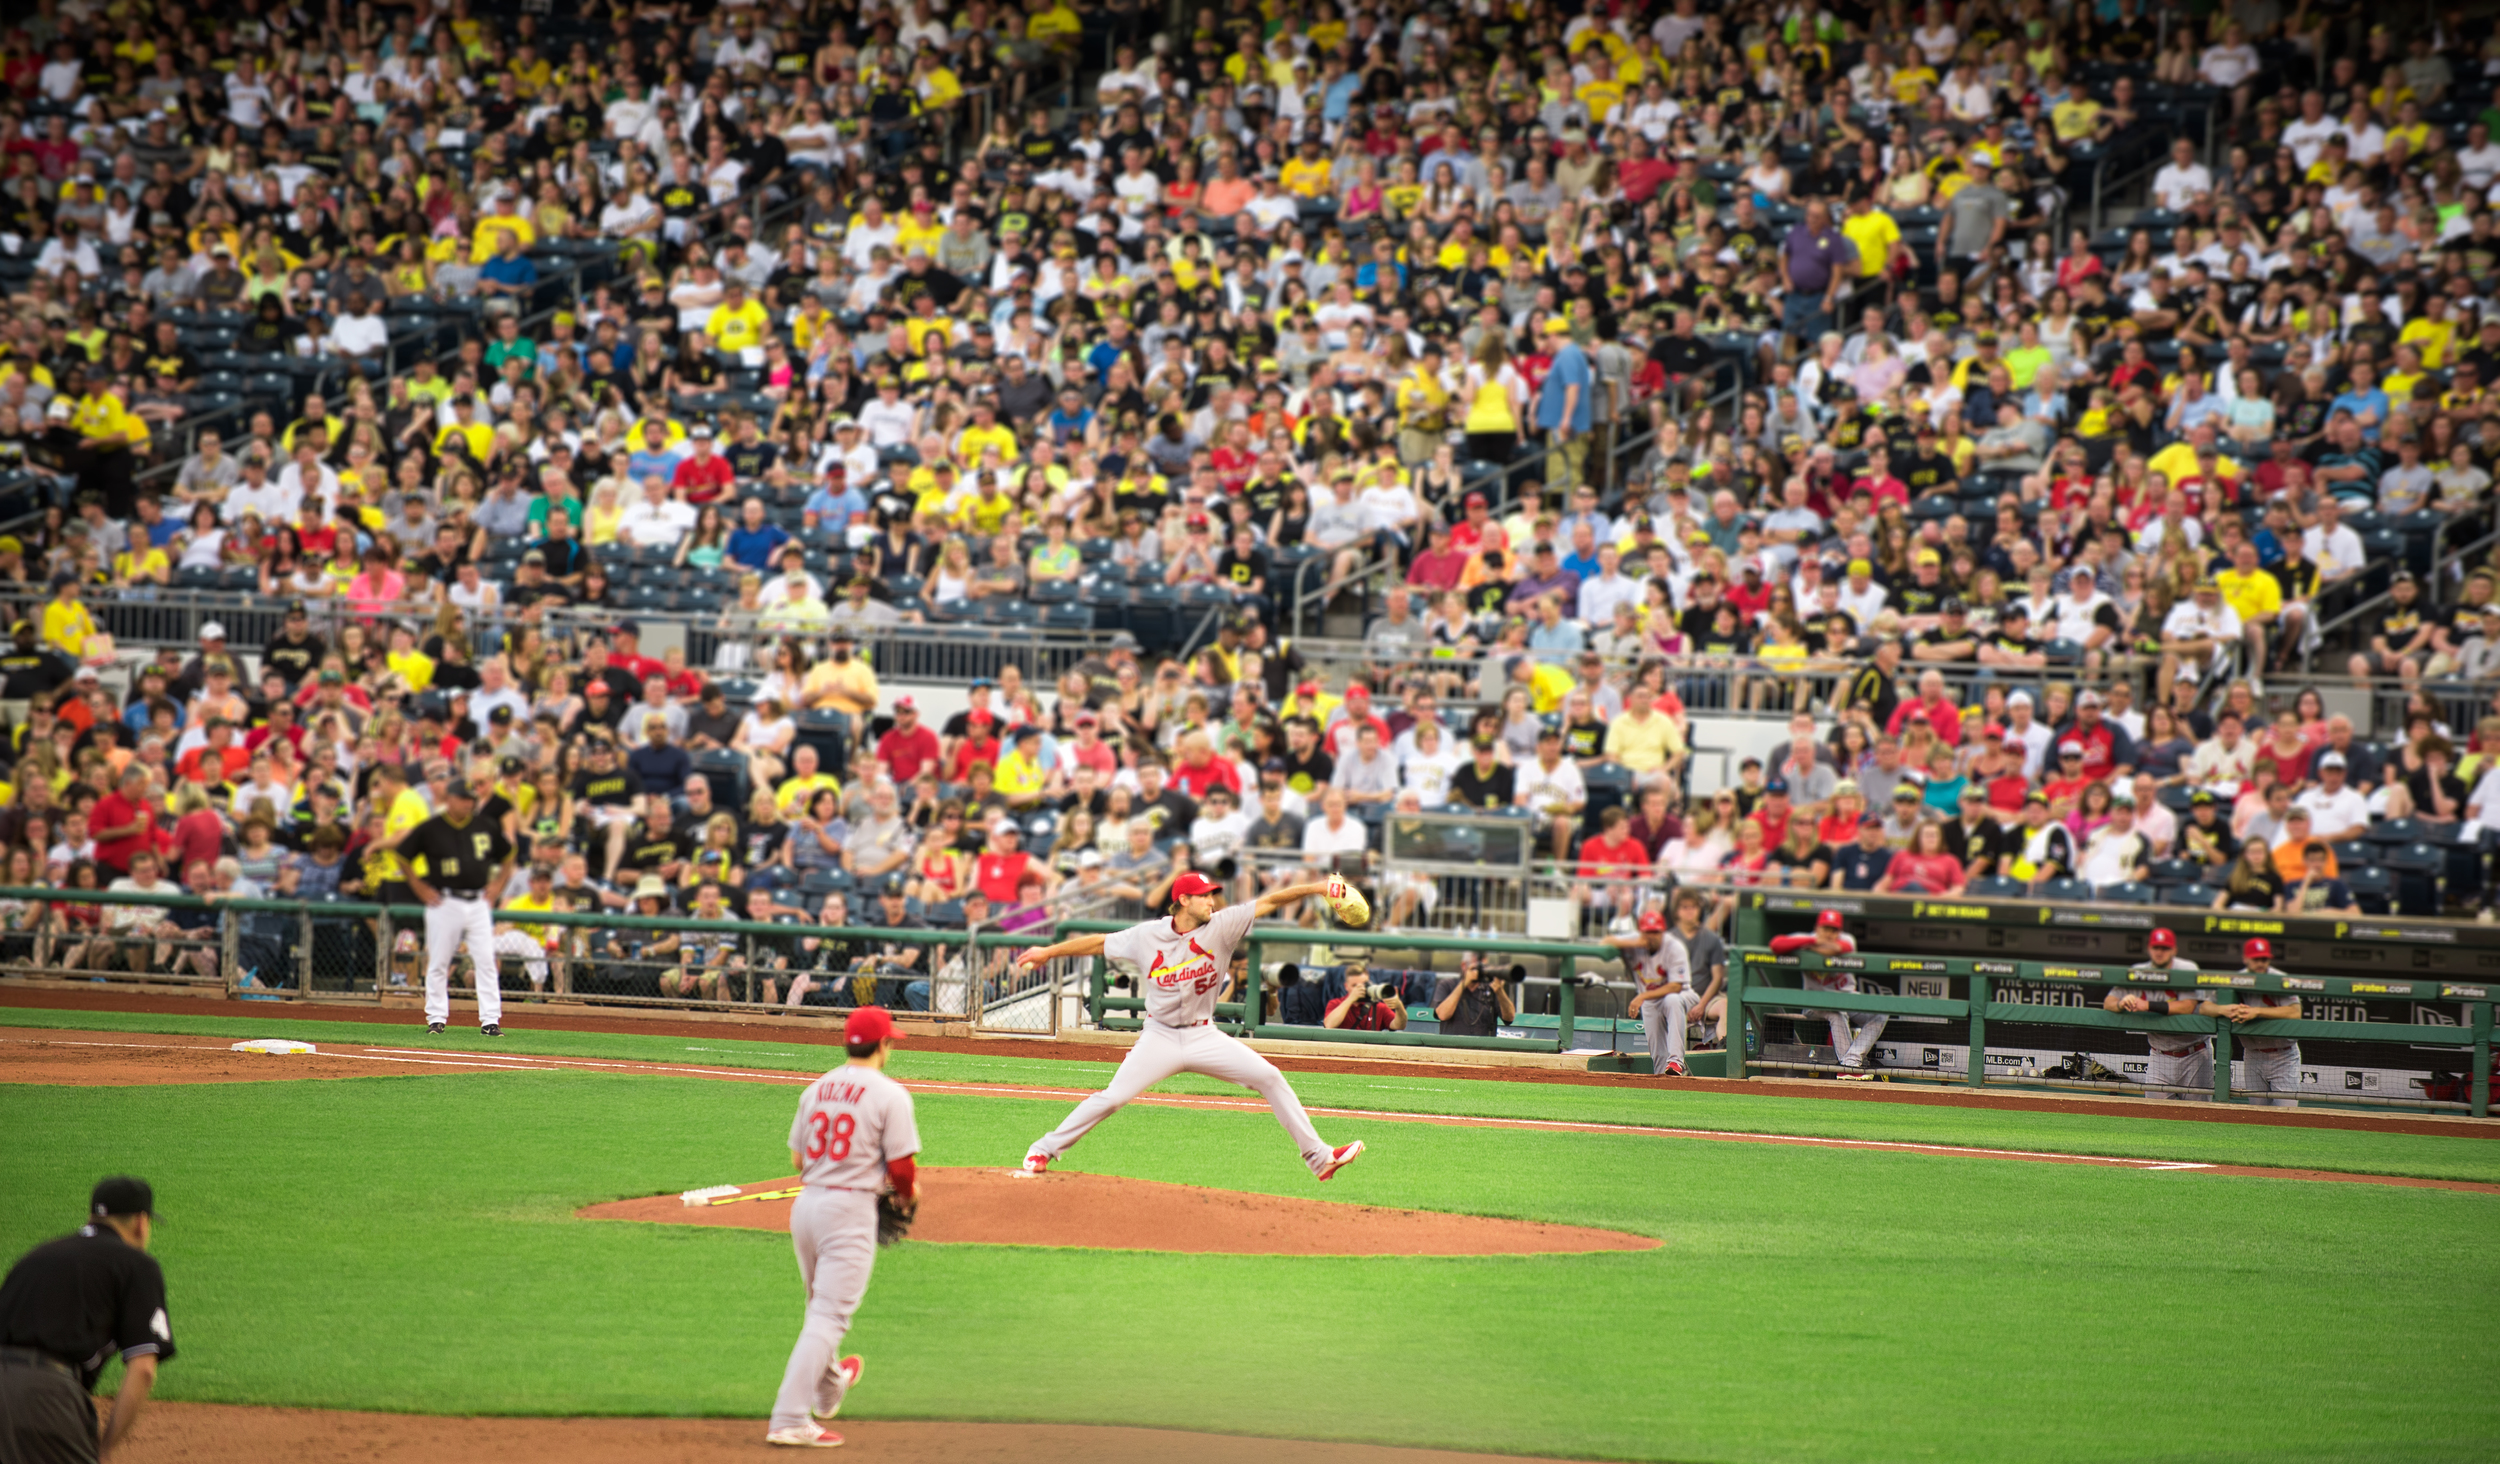 Cardinals in PNC PARK - Pittsburgh